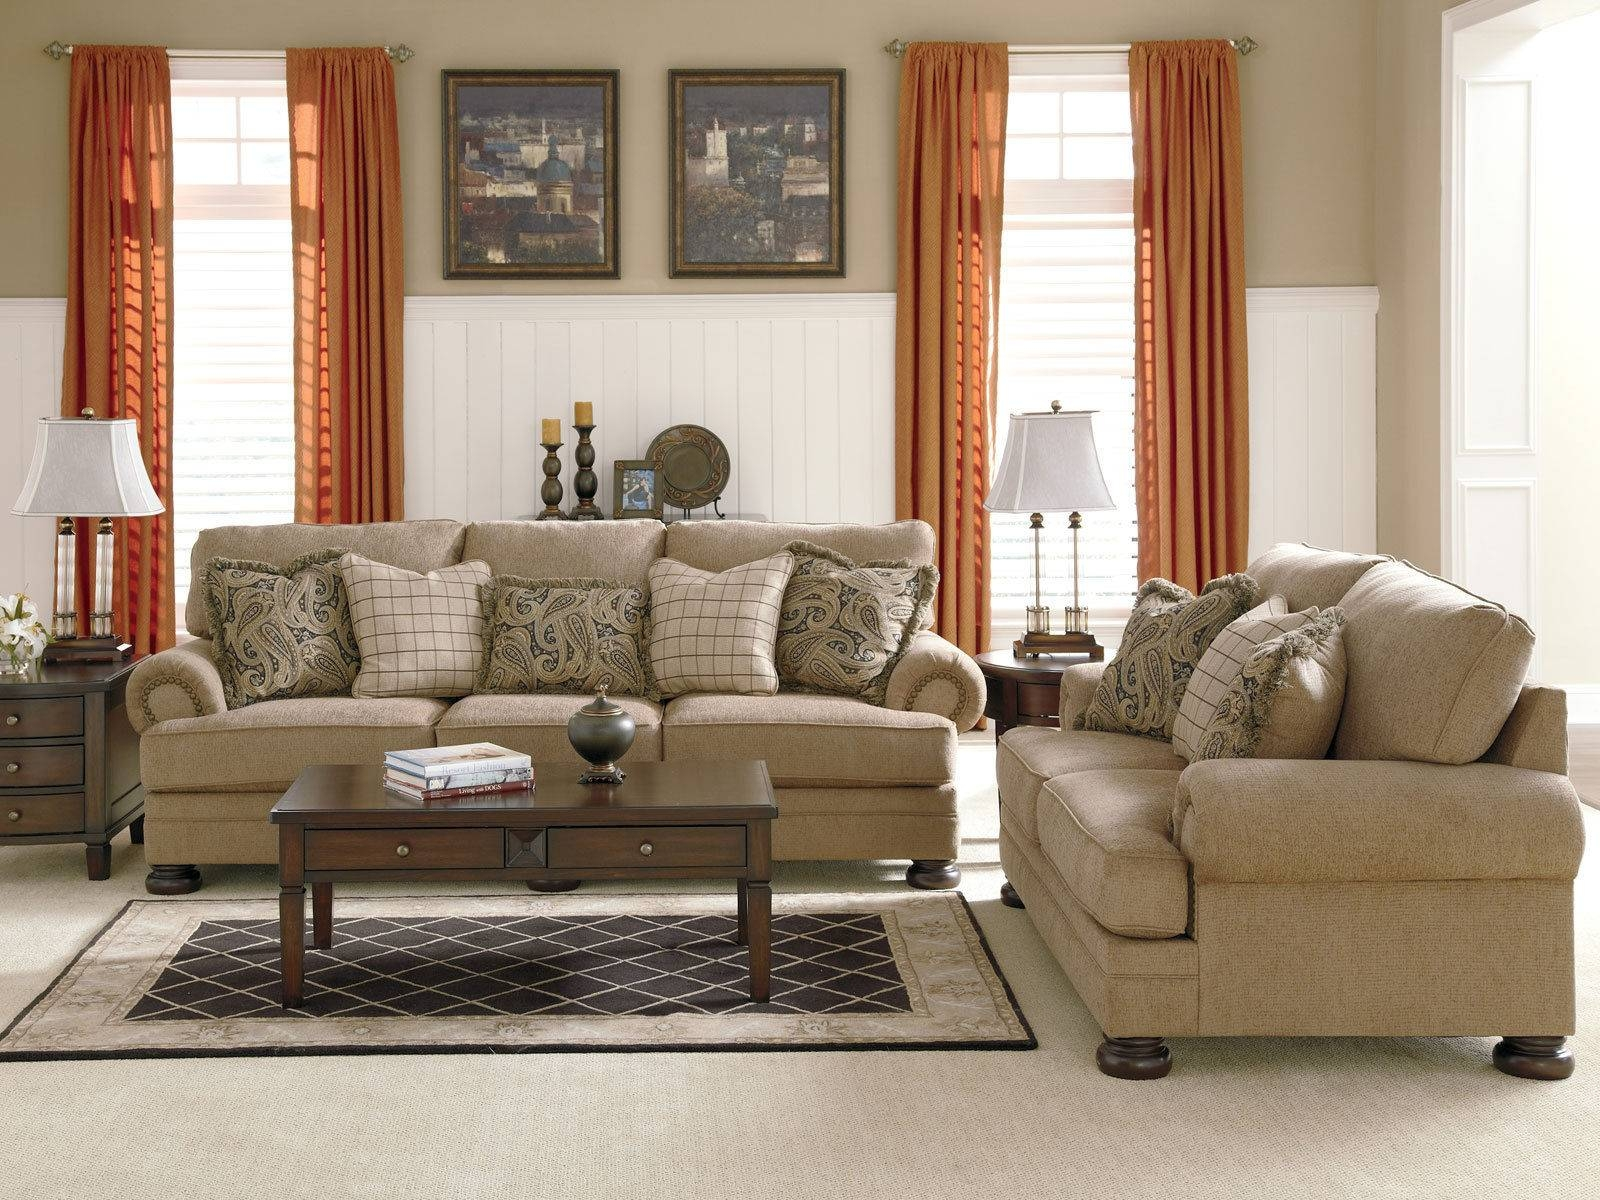 Easy Oversized Living Room Furniture Ideas — Liberty Interior Inside Oversized Sofa Chairs (View 6 of 15)